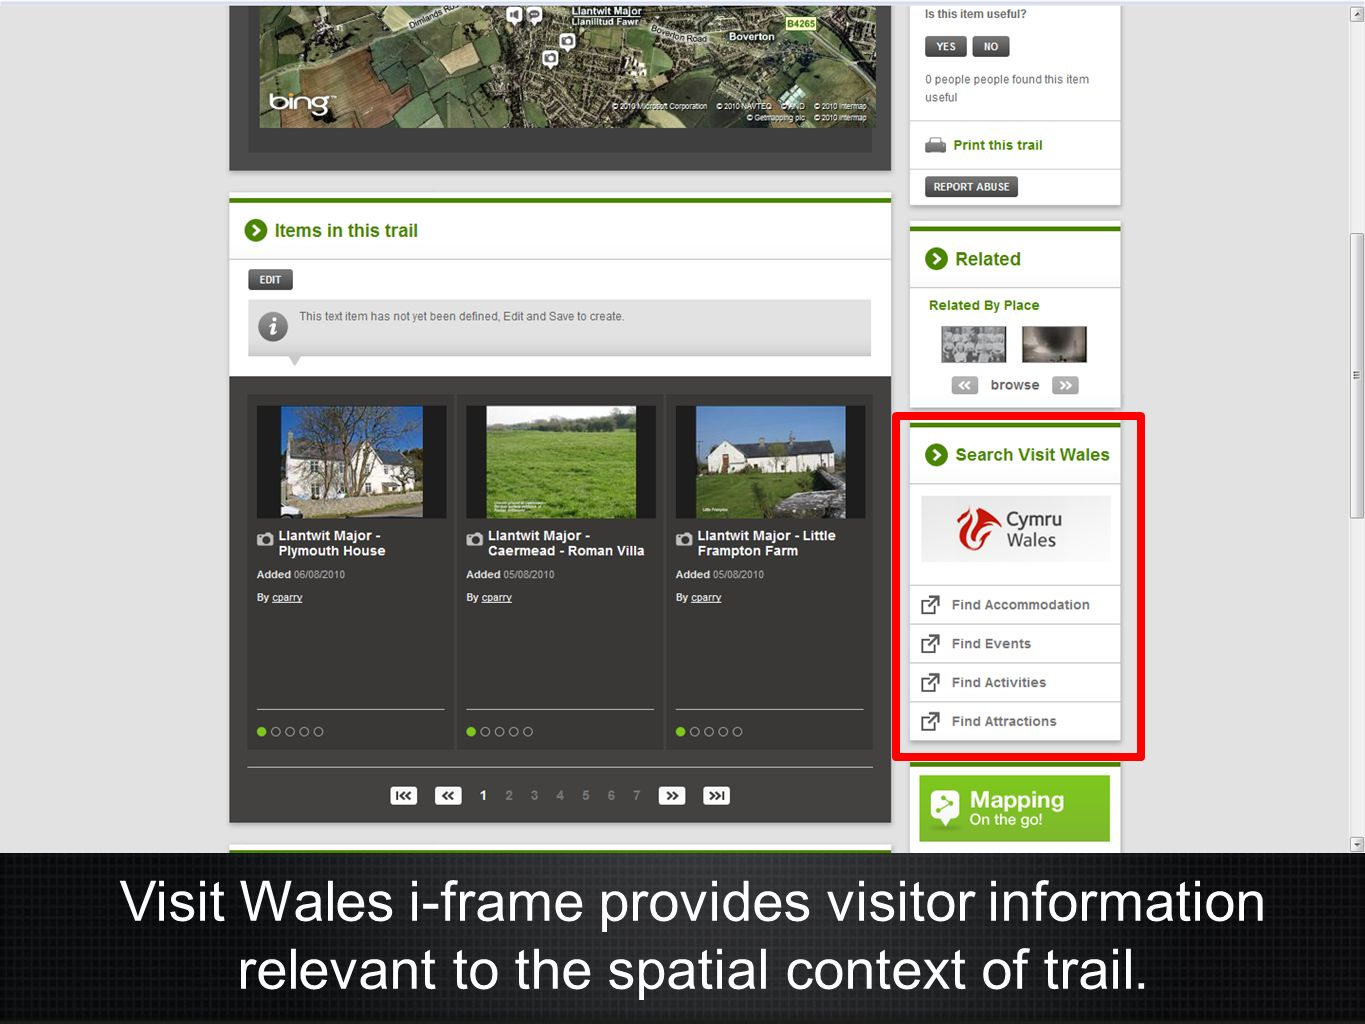 Visit Wales i-frame provides visitor information relevant to the spatial context of trail.